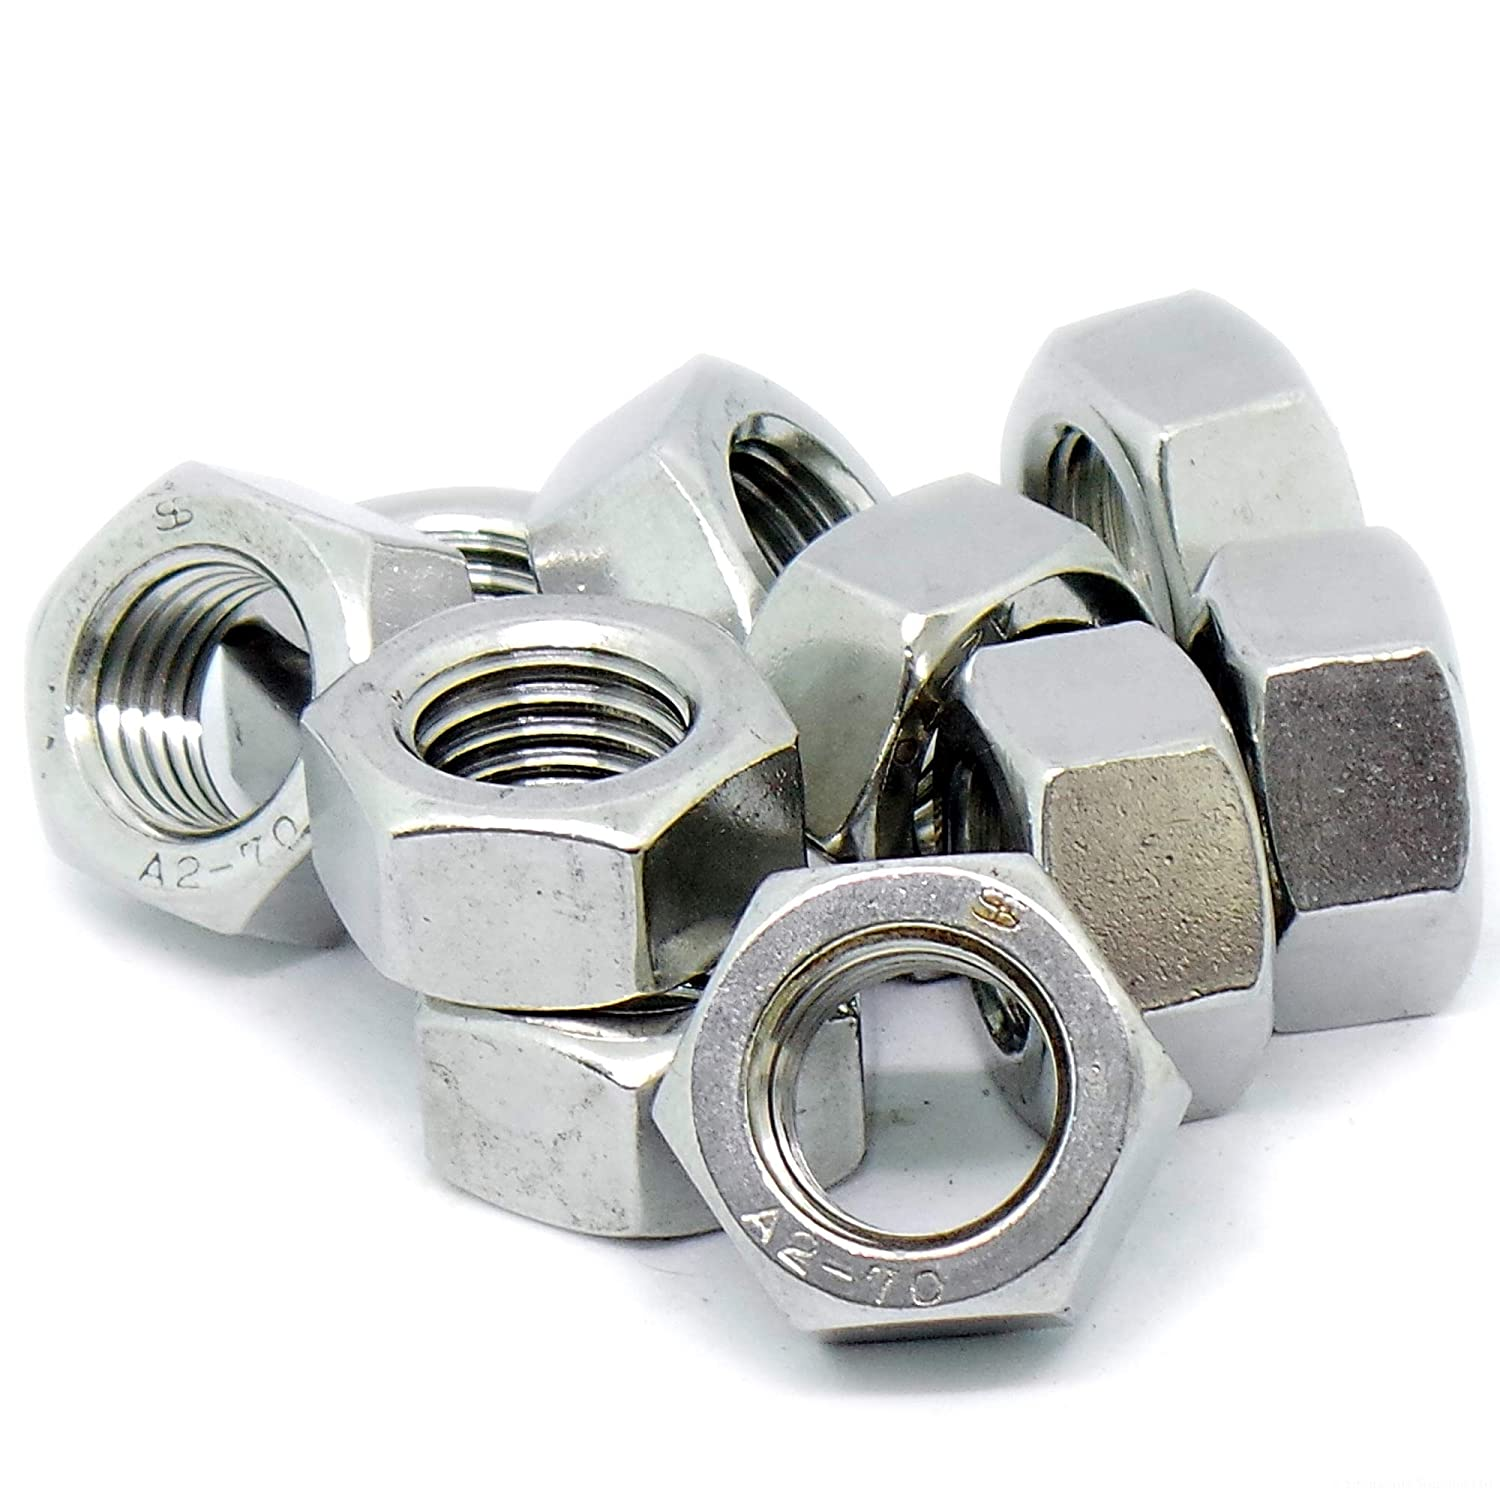 M16 (16mm) Hex Nuts - Stainless Steel (A2) (Pack of 10) Singularity Supplies Ltd